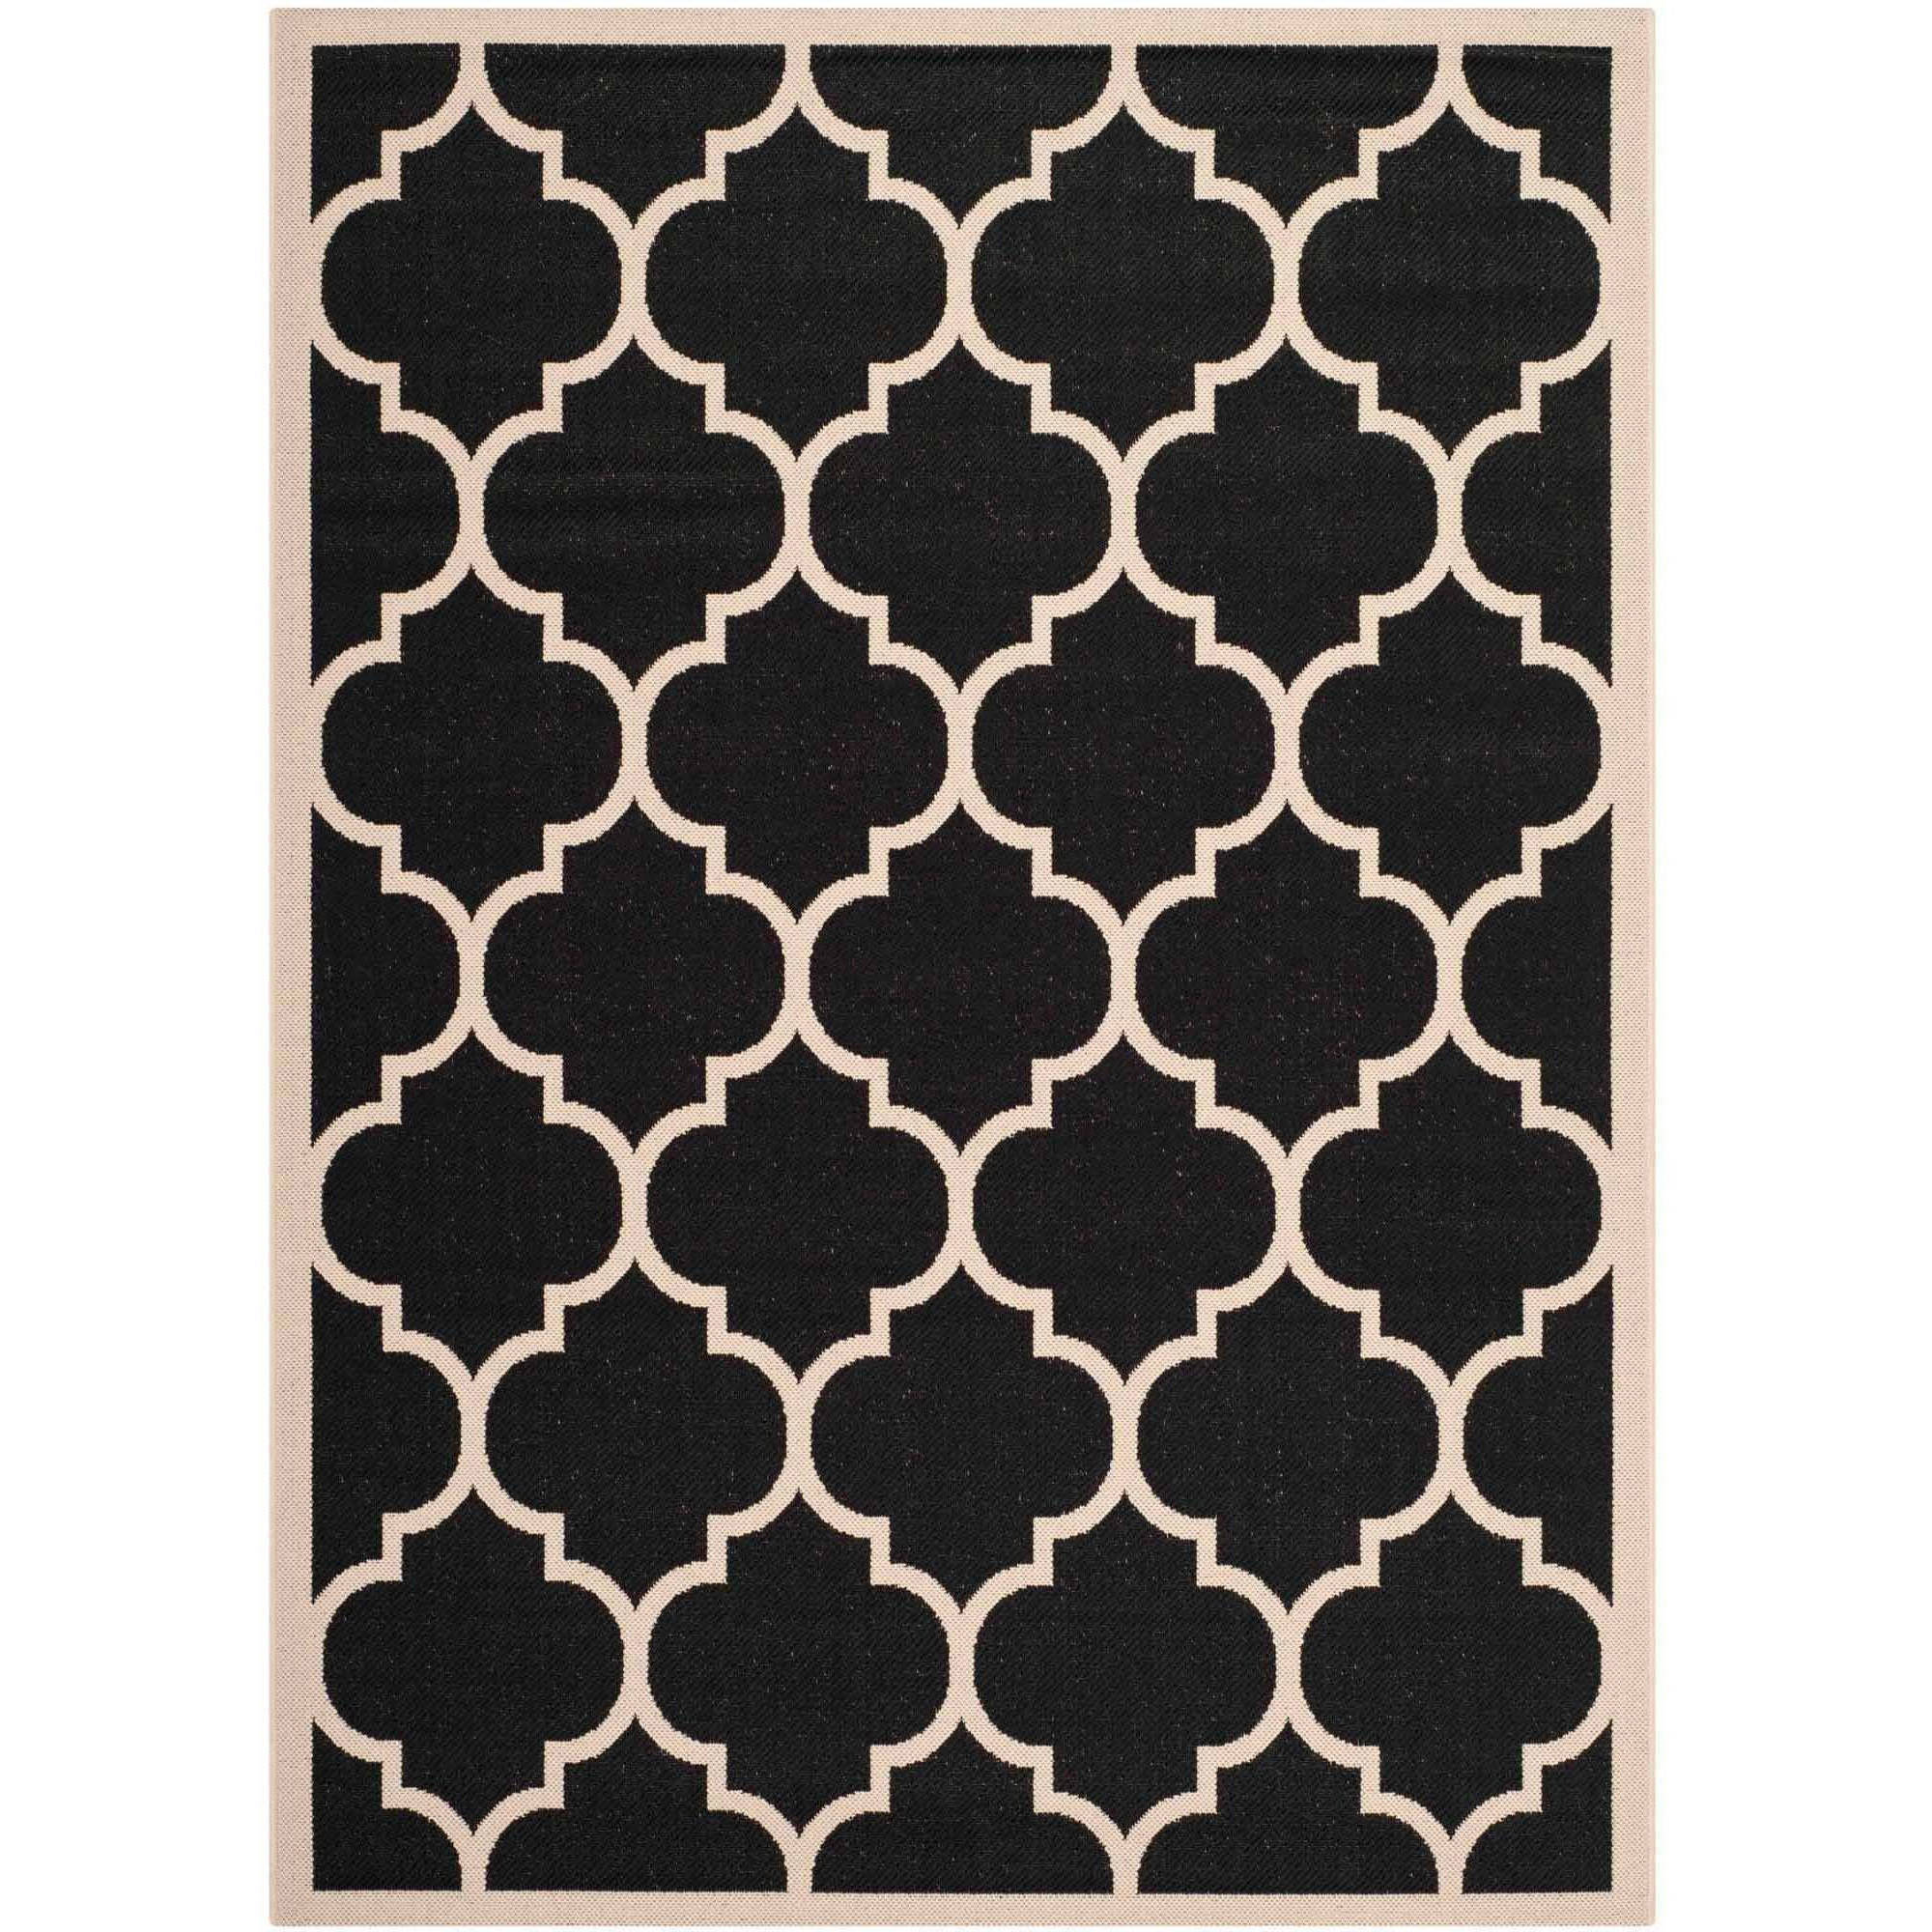 Safavieh Courtyard Alyssa Indoor/Outdoor Area Rug or Runner